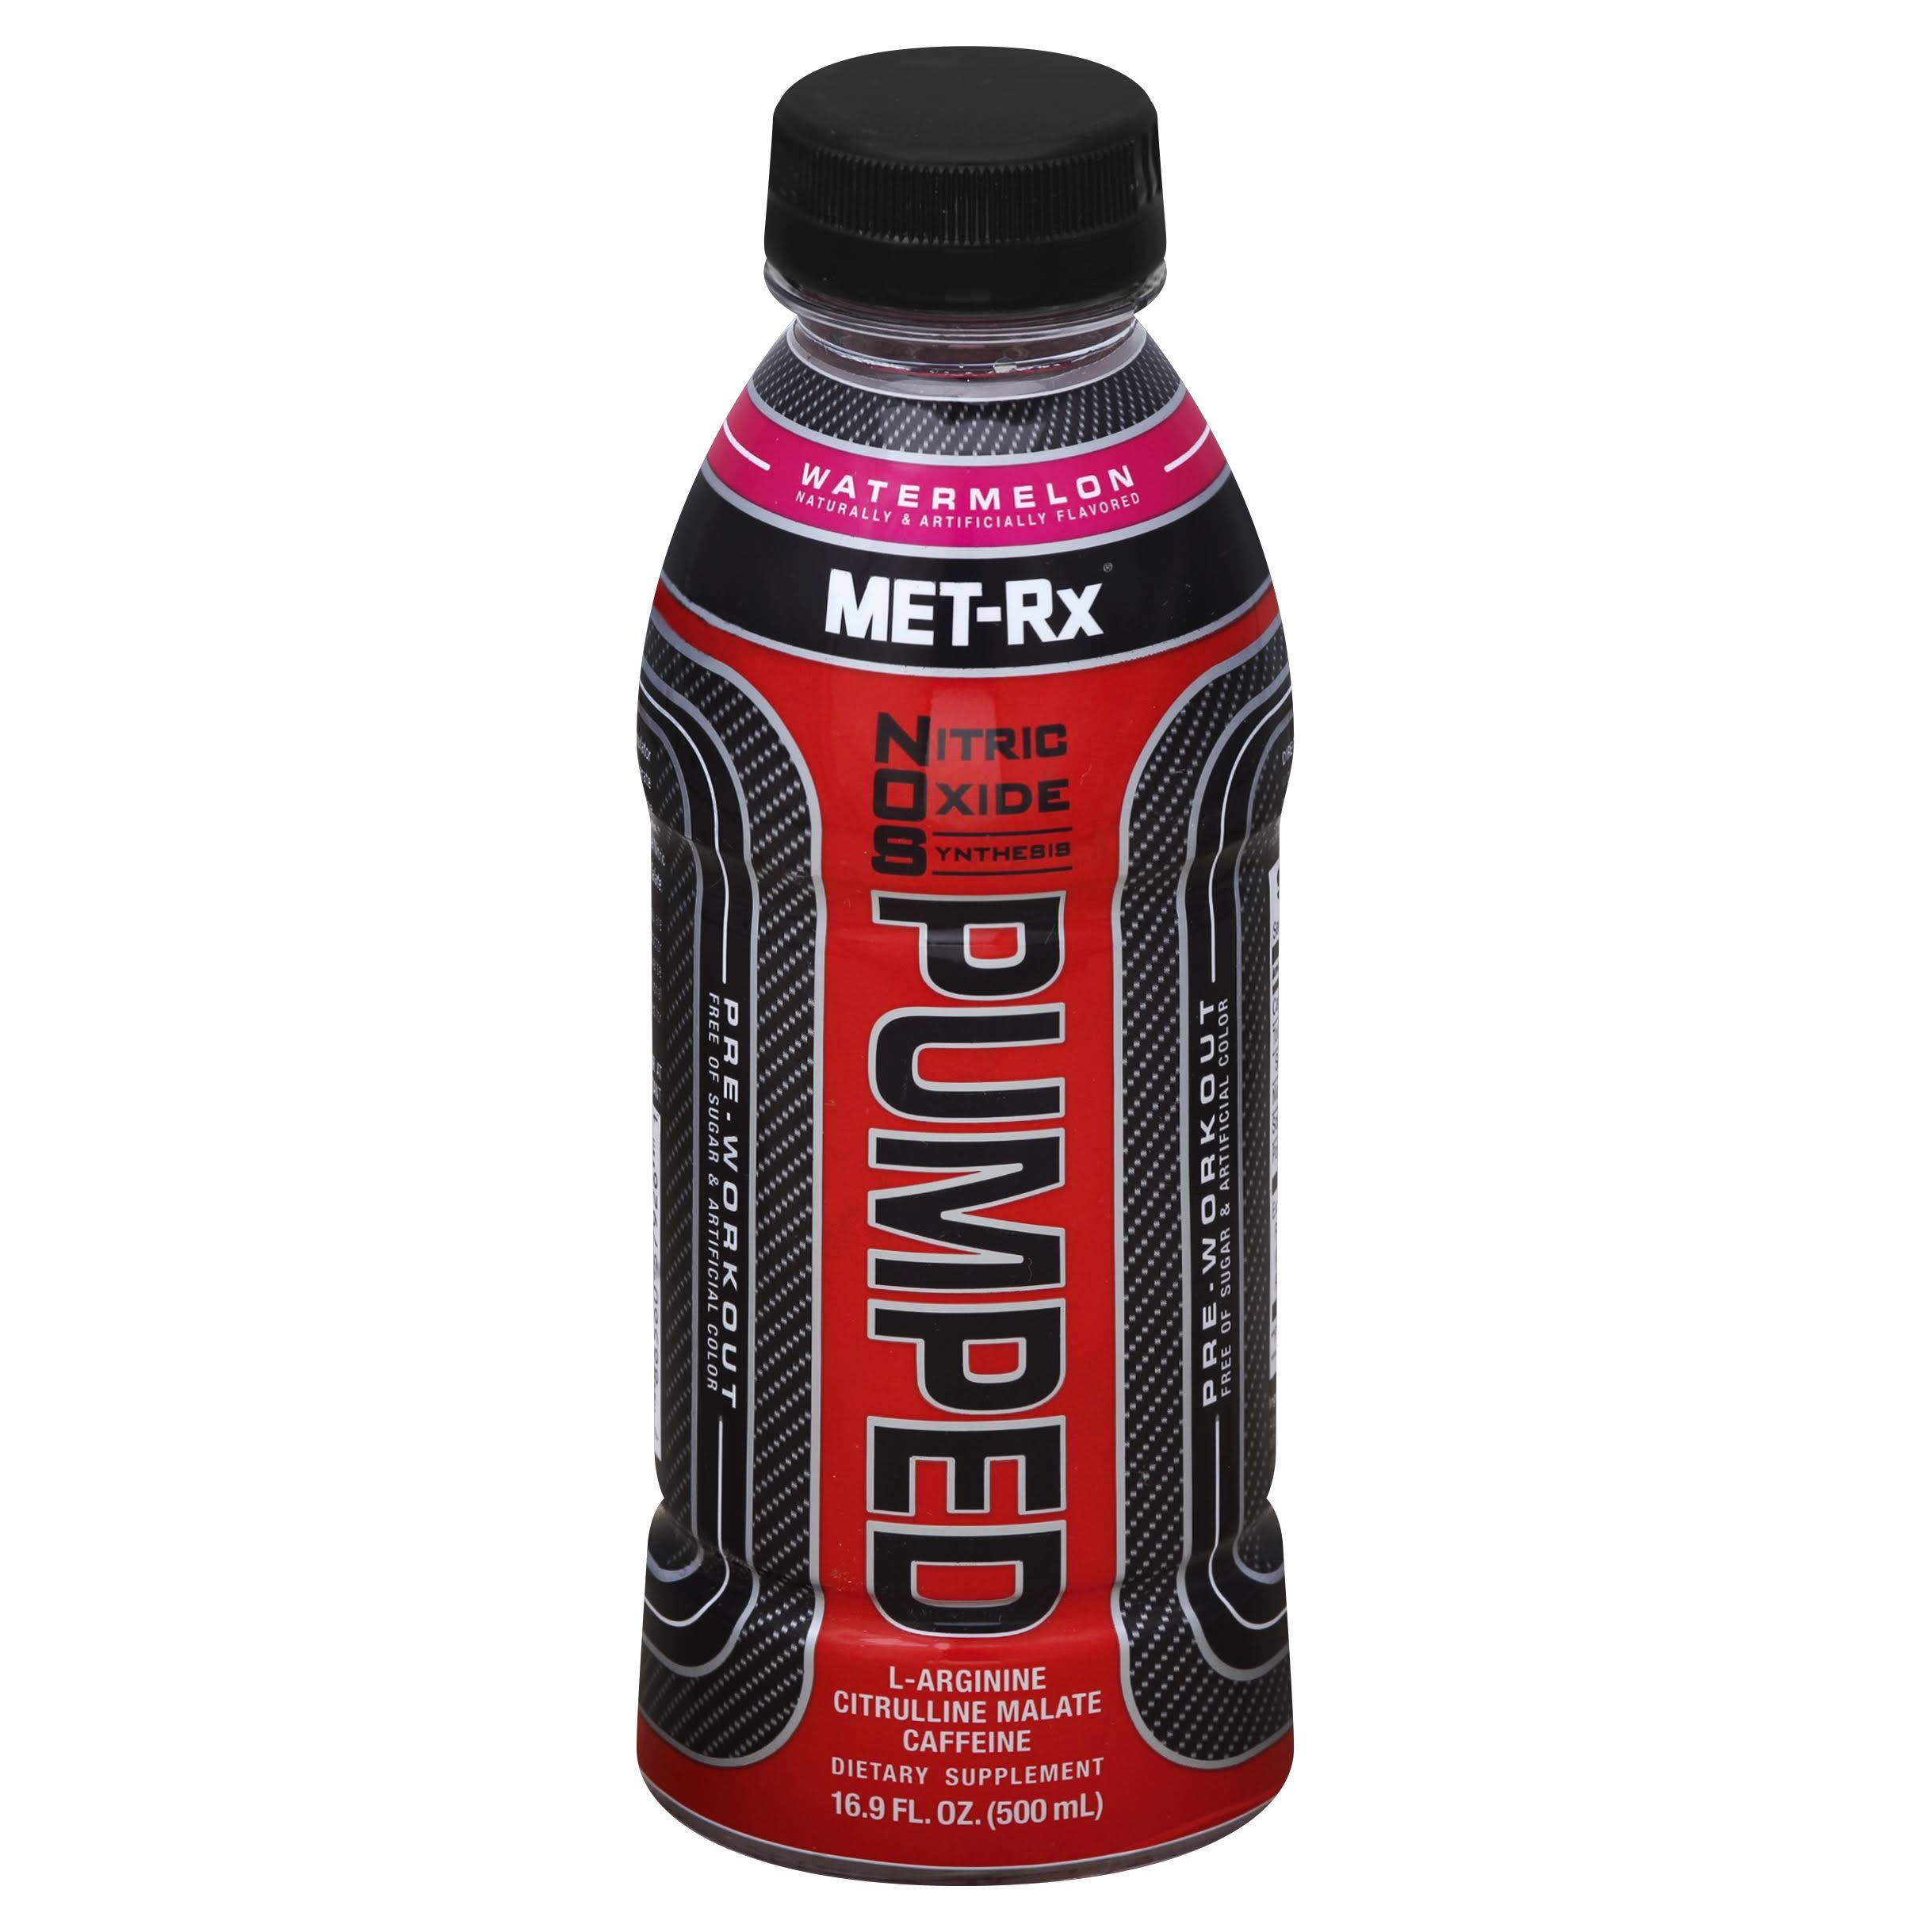 Met-rx NOS Pumped Pre-Workout Energy Drink - Watermelon, 16.9oz, 12 Count